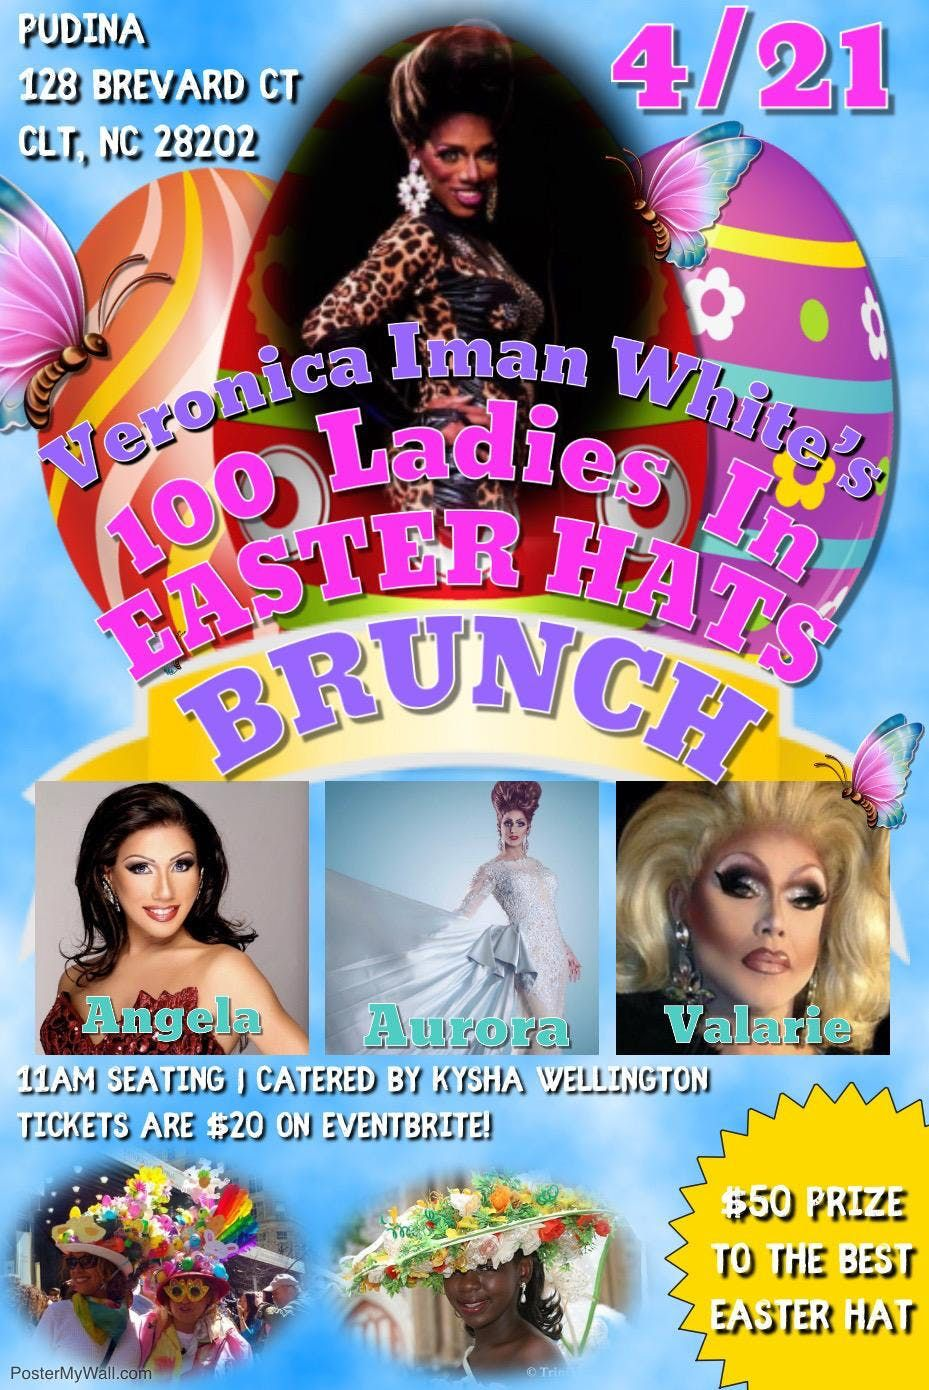 100 Ladies In Easter Hats Brunch with Veronica Iman White